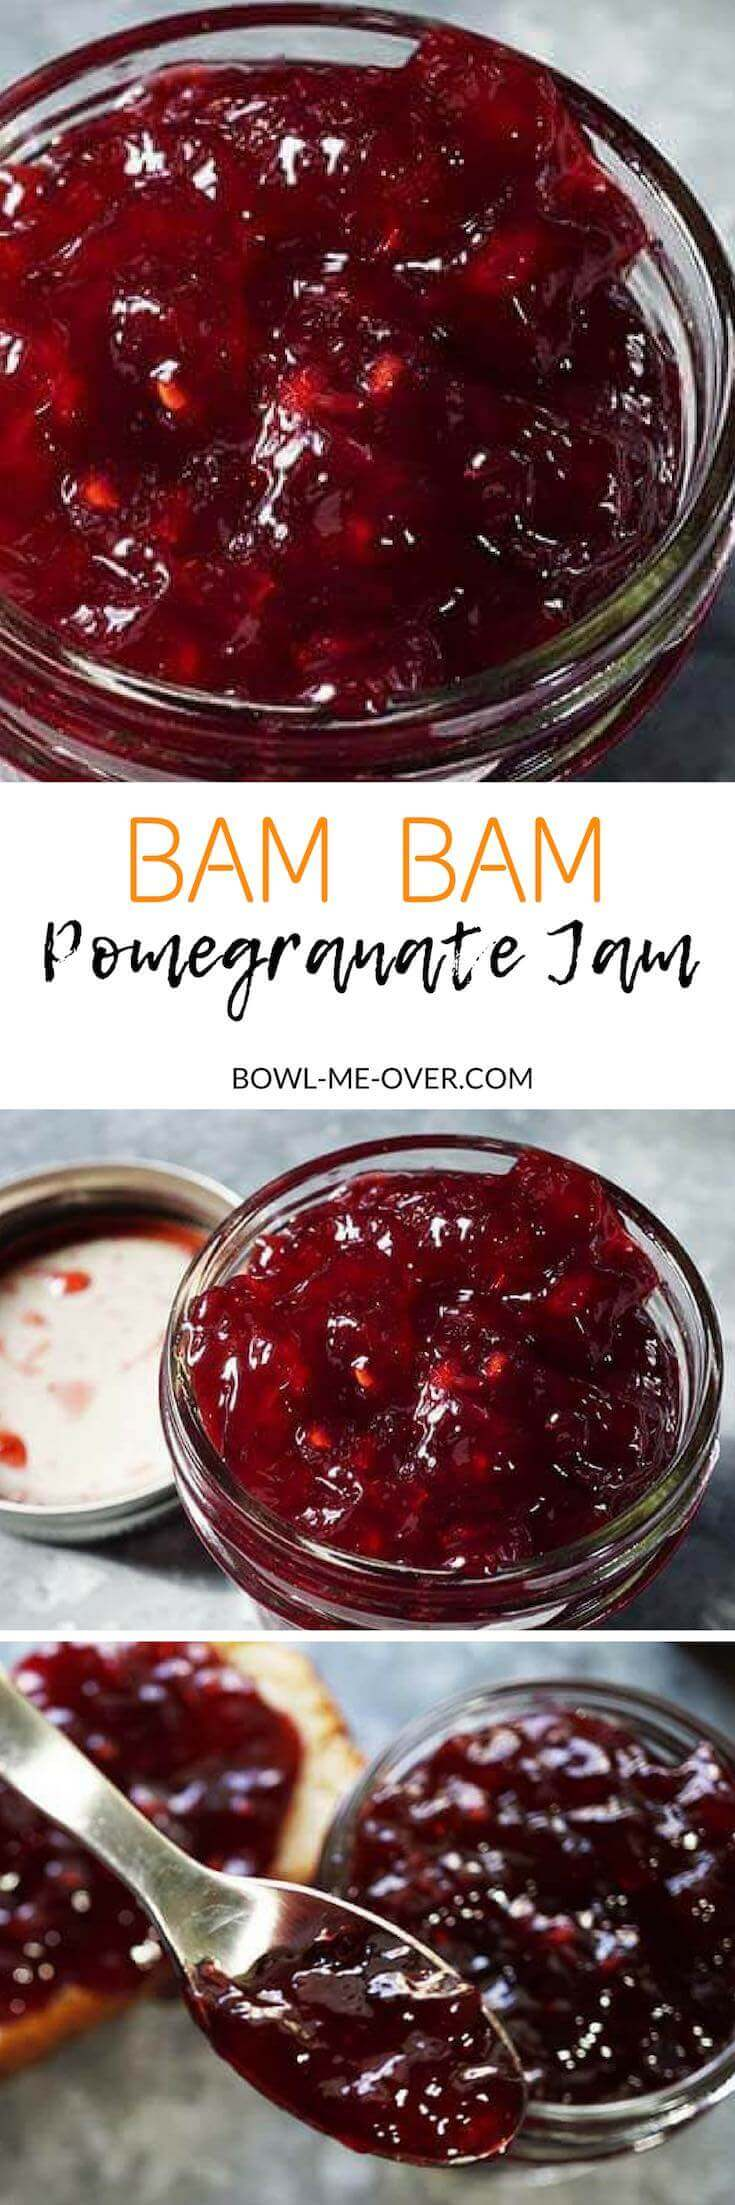 Homemade Jam is a great gift for the holidays! #HomemadeJam #PomegranateJam